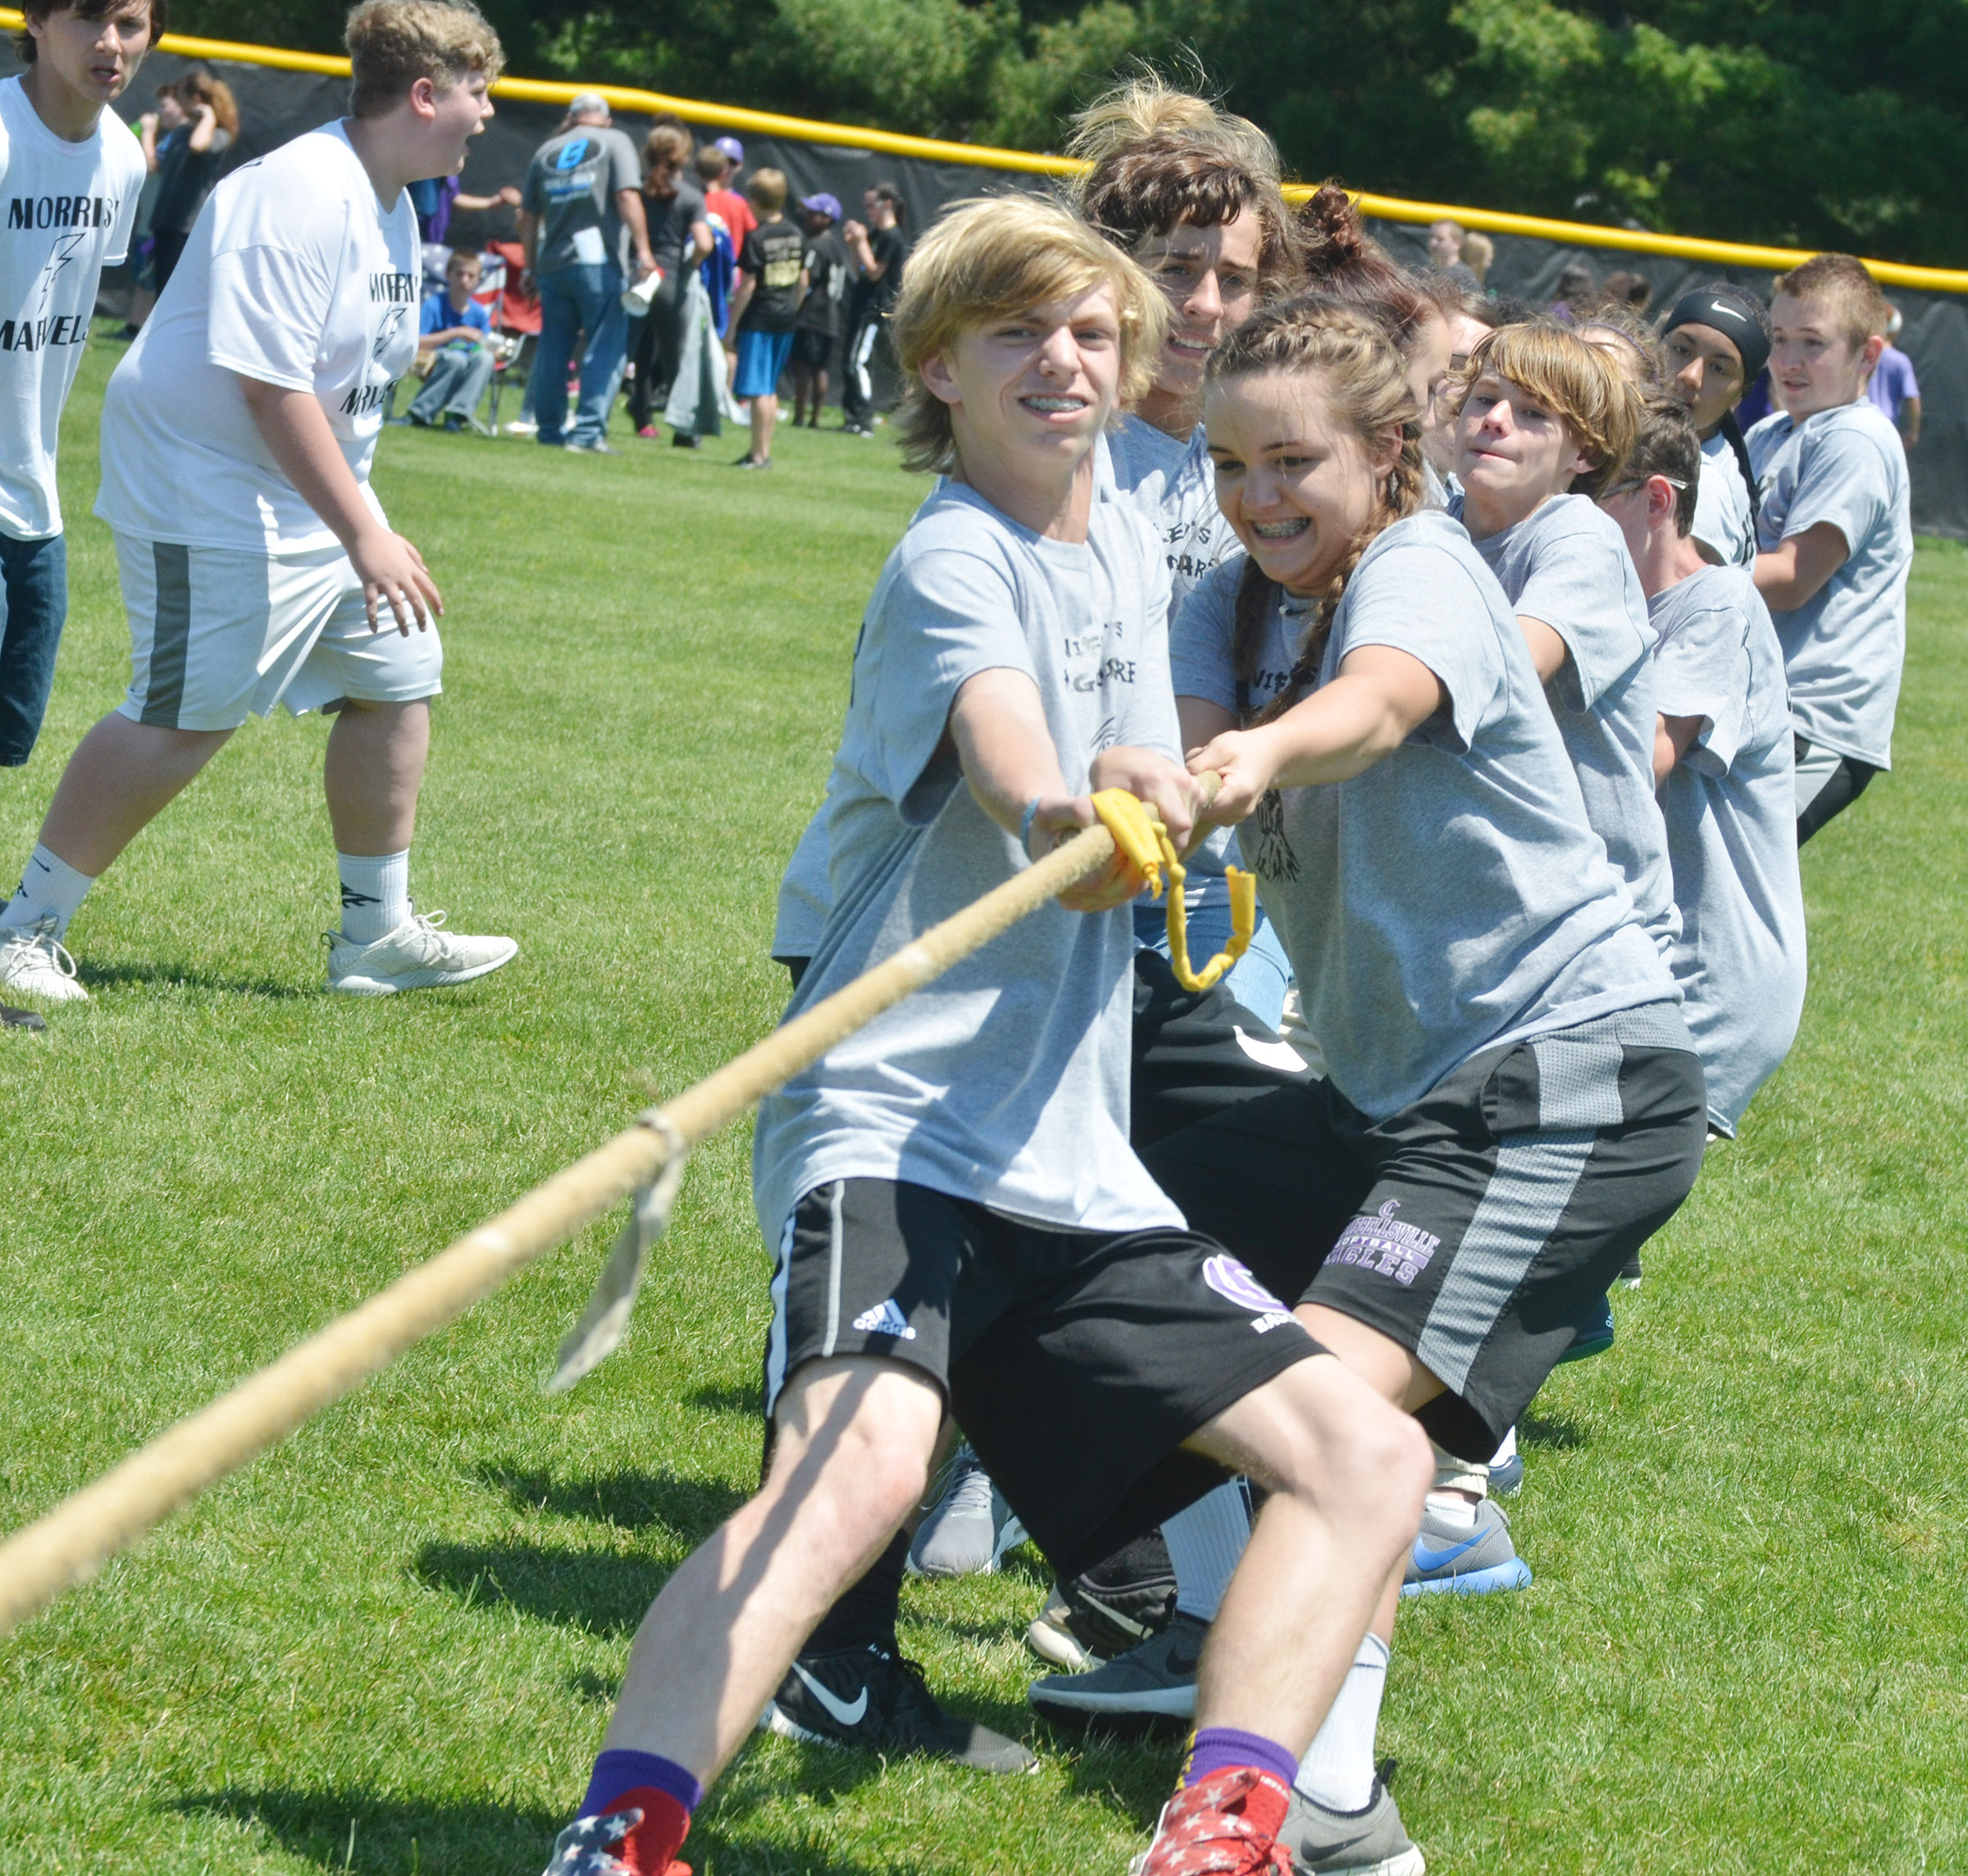 CMS eighth-graders Arren Hash and Kenzi Forbis compete with their classmates in tug of war.